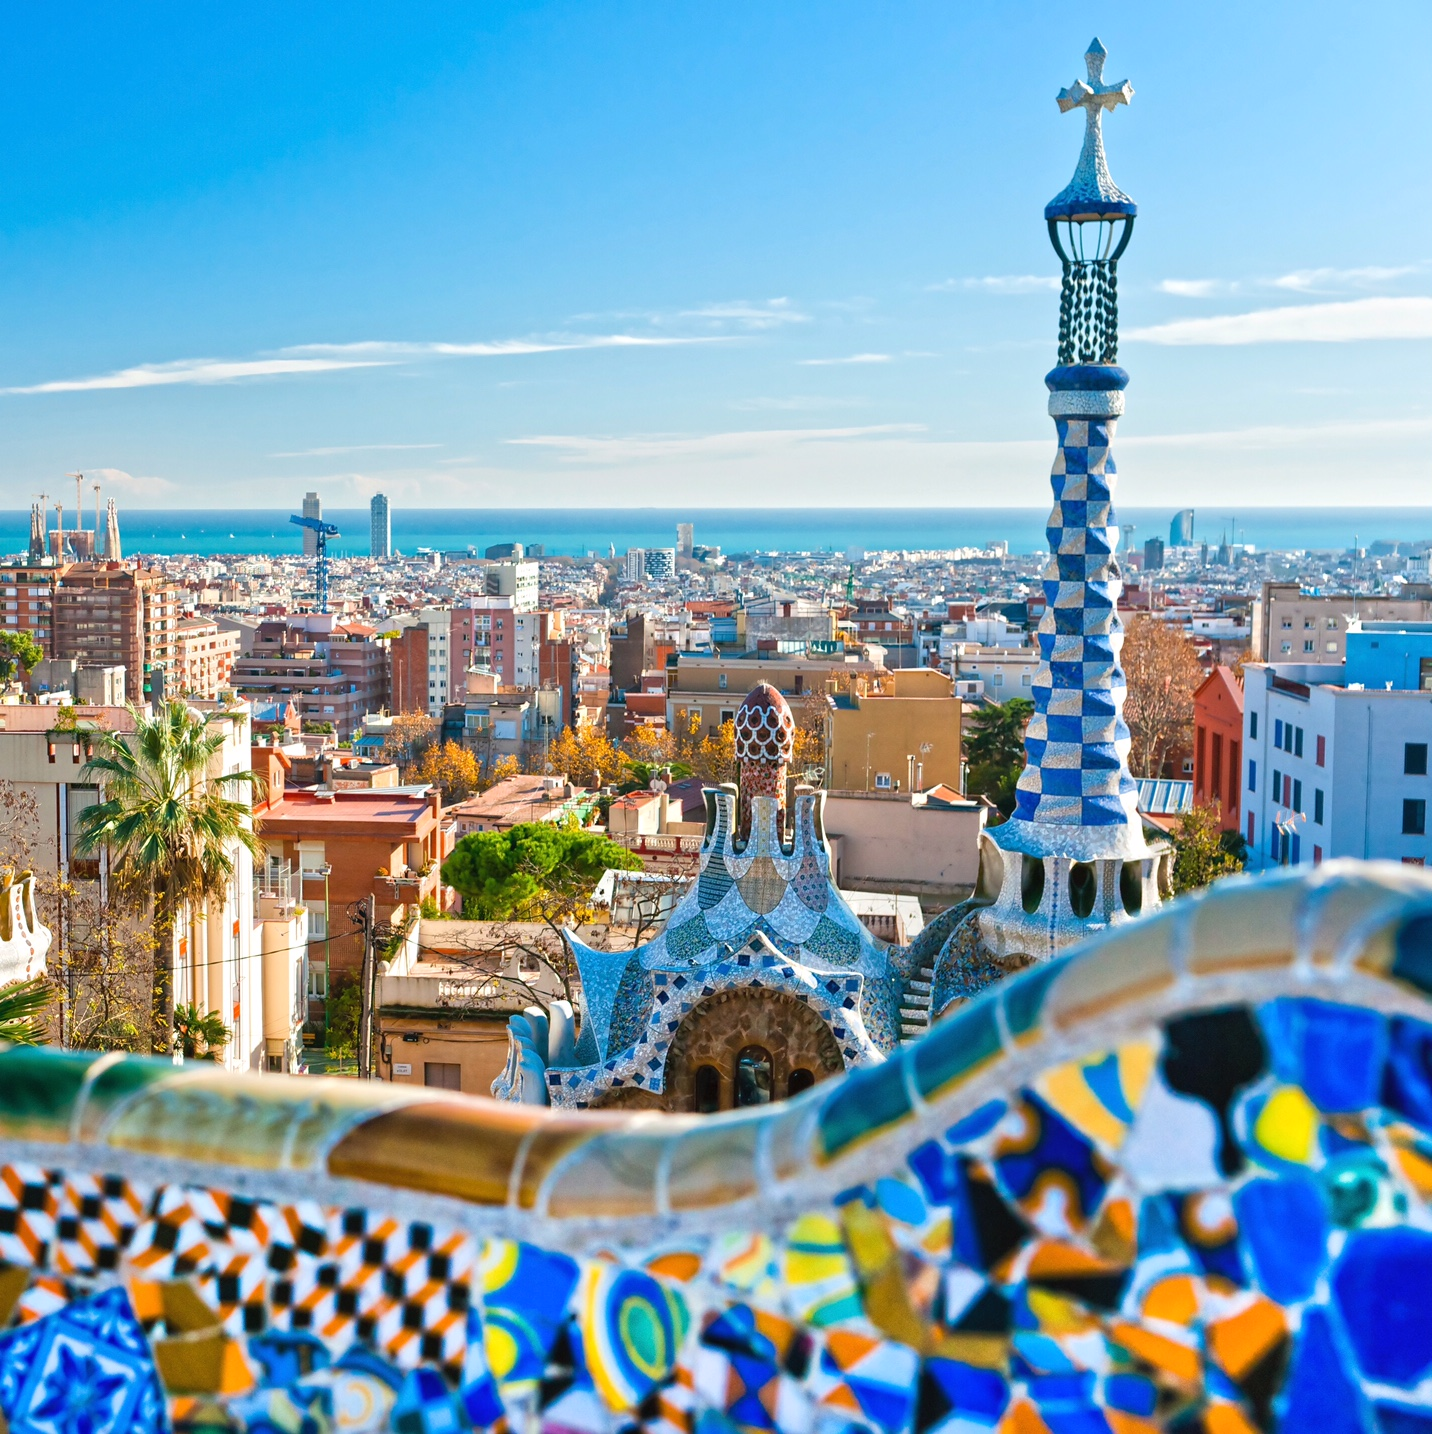 From Barcelona